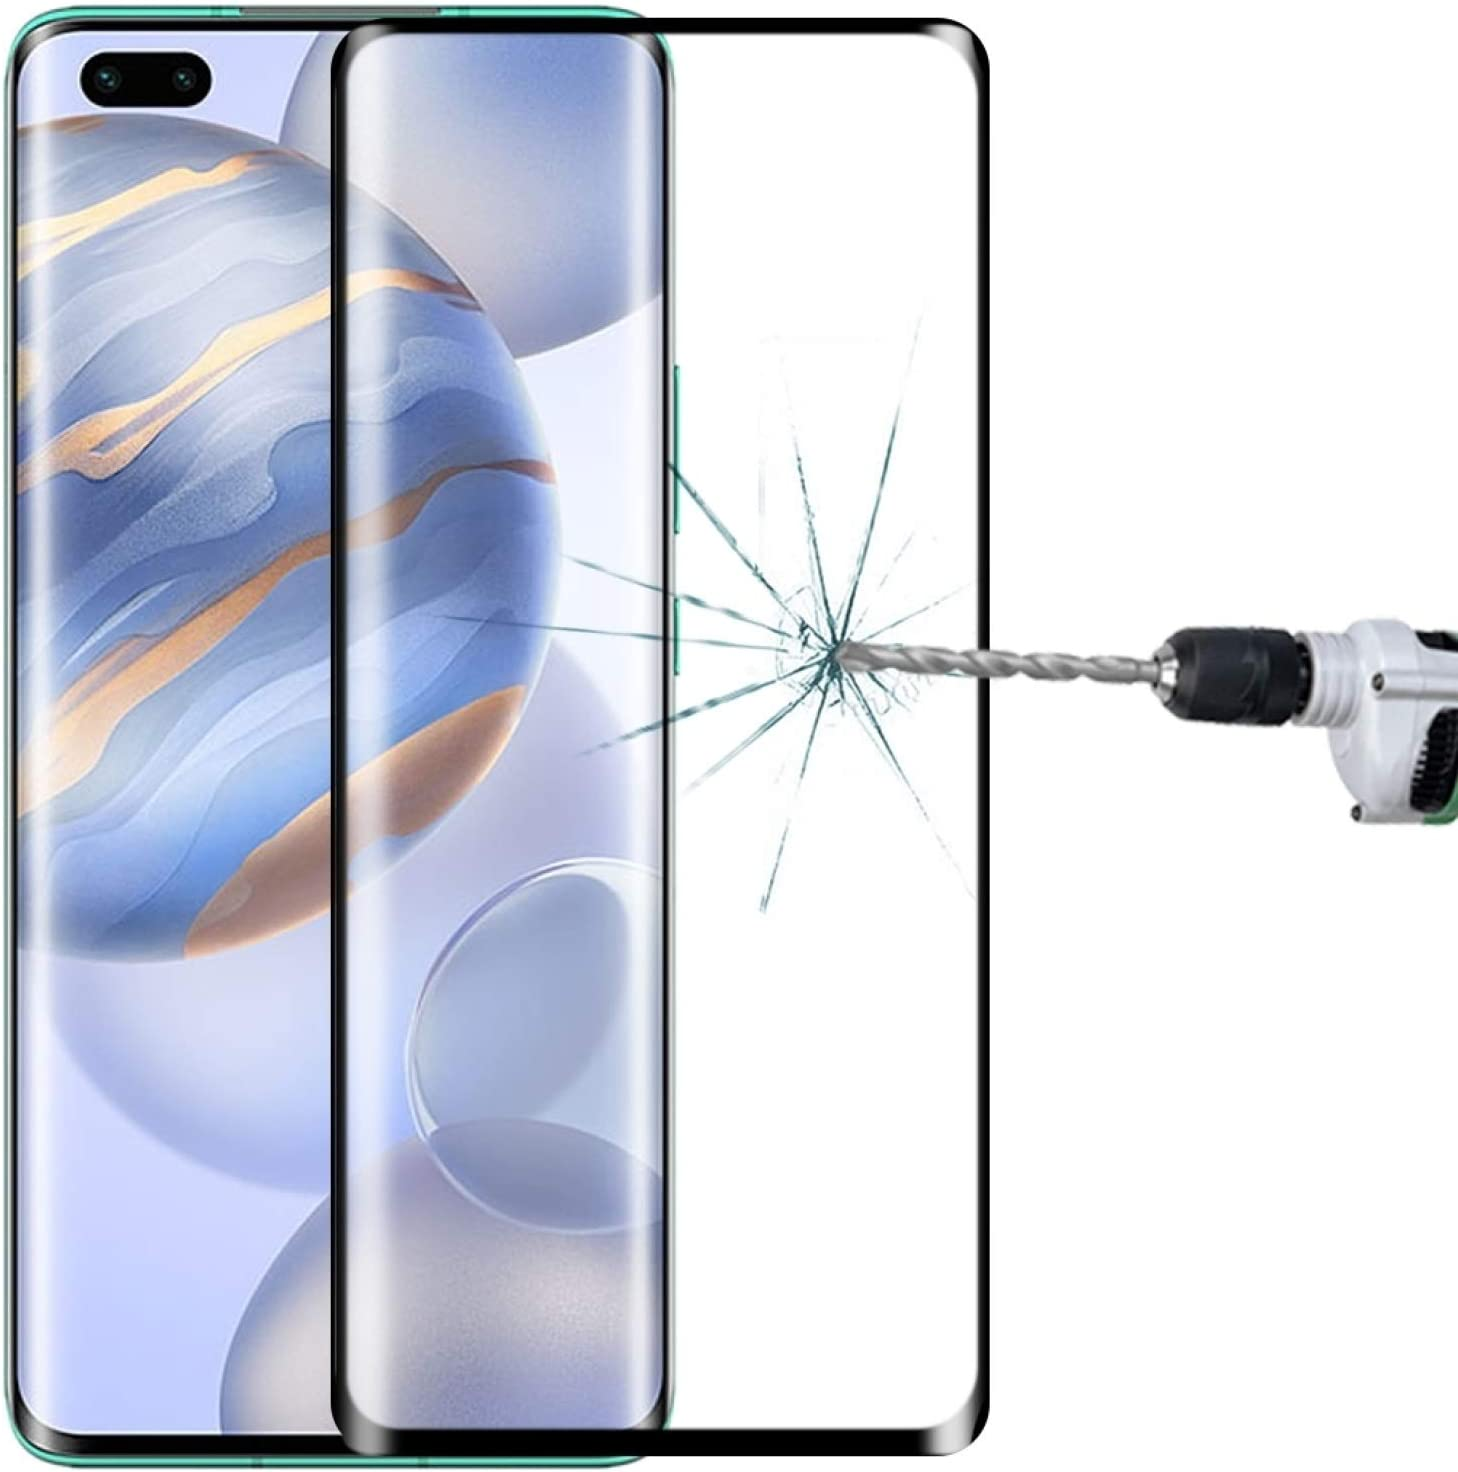 NANSHAN✅ HDSCREENPROTECTOR+ for Huawei 2021 spring and summer new Honor Cu 30 Outlet ☆ Free Shipping 3D Pro